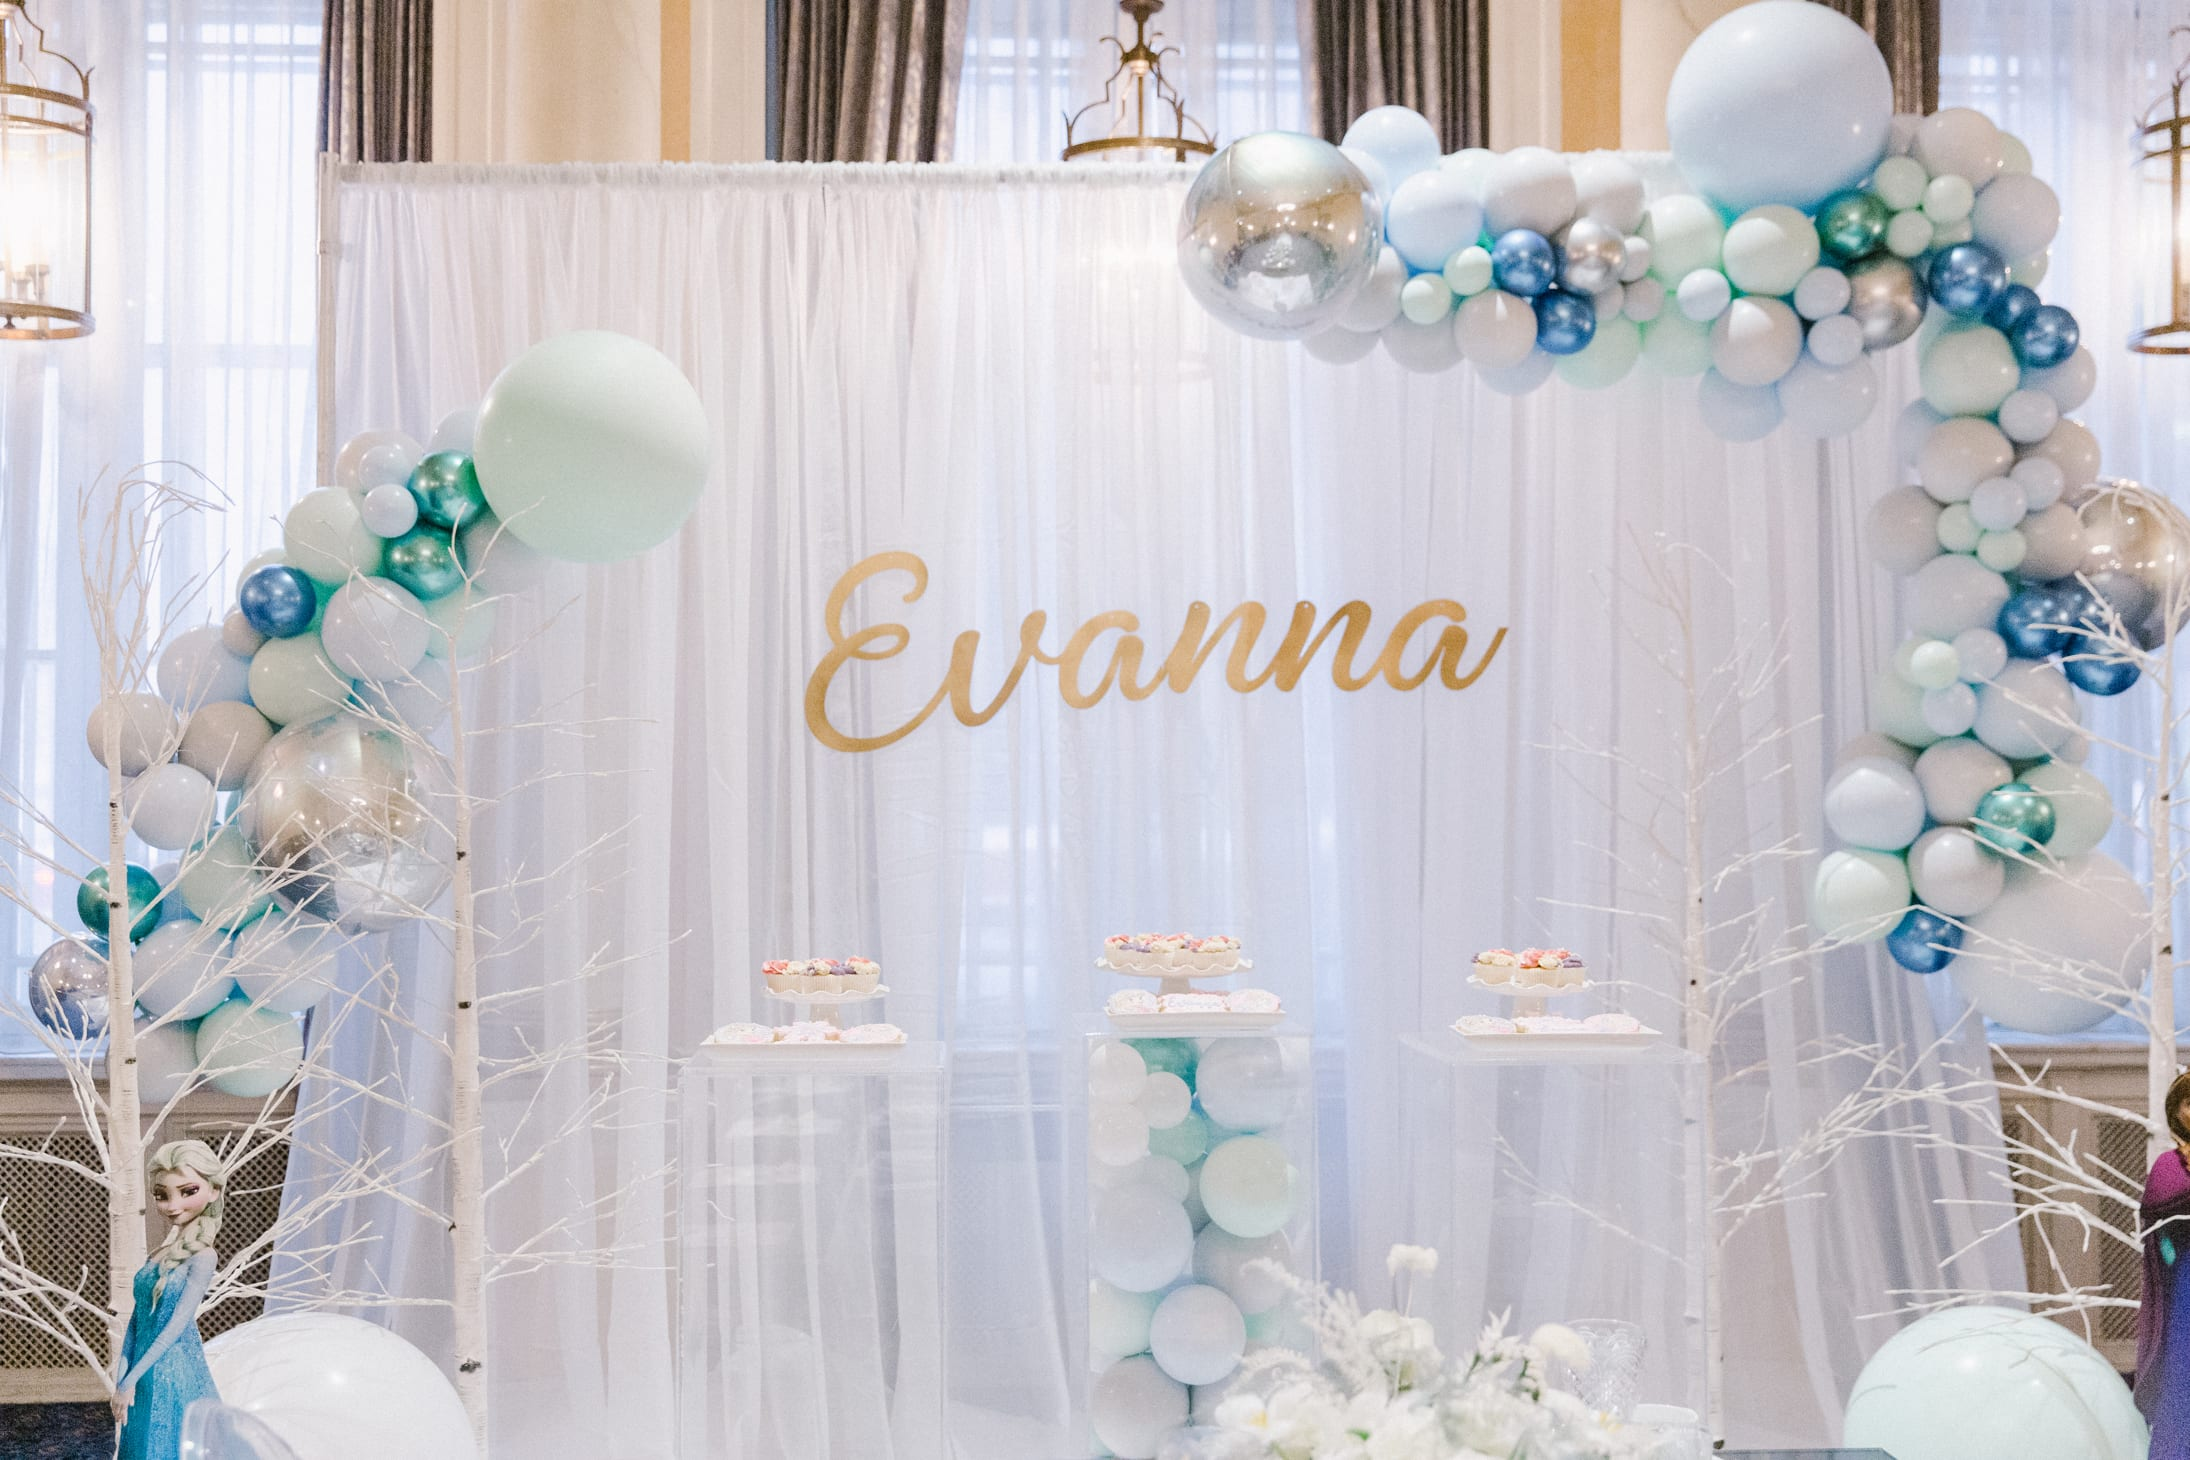 Jillian Harris Evannas Special Day